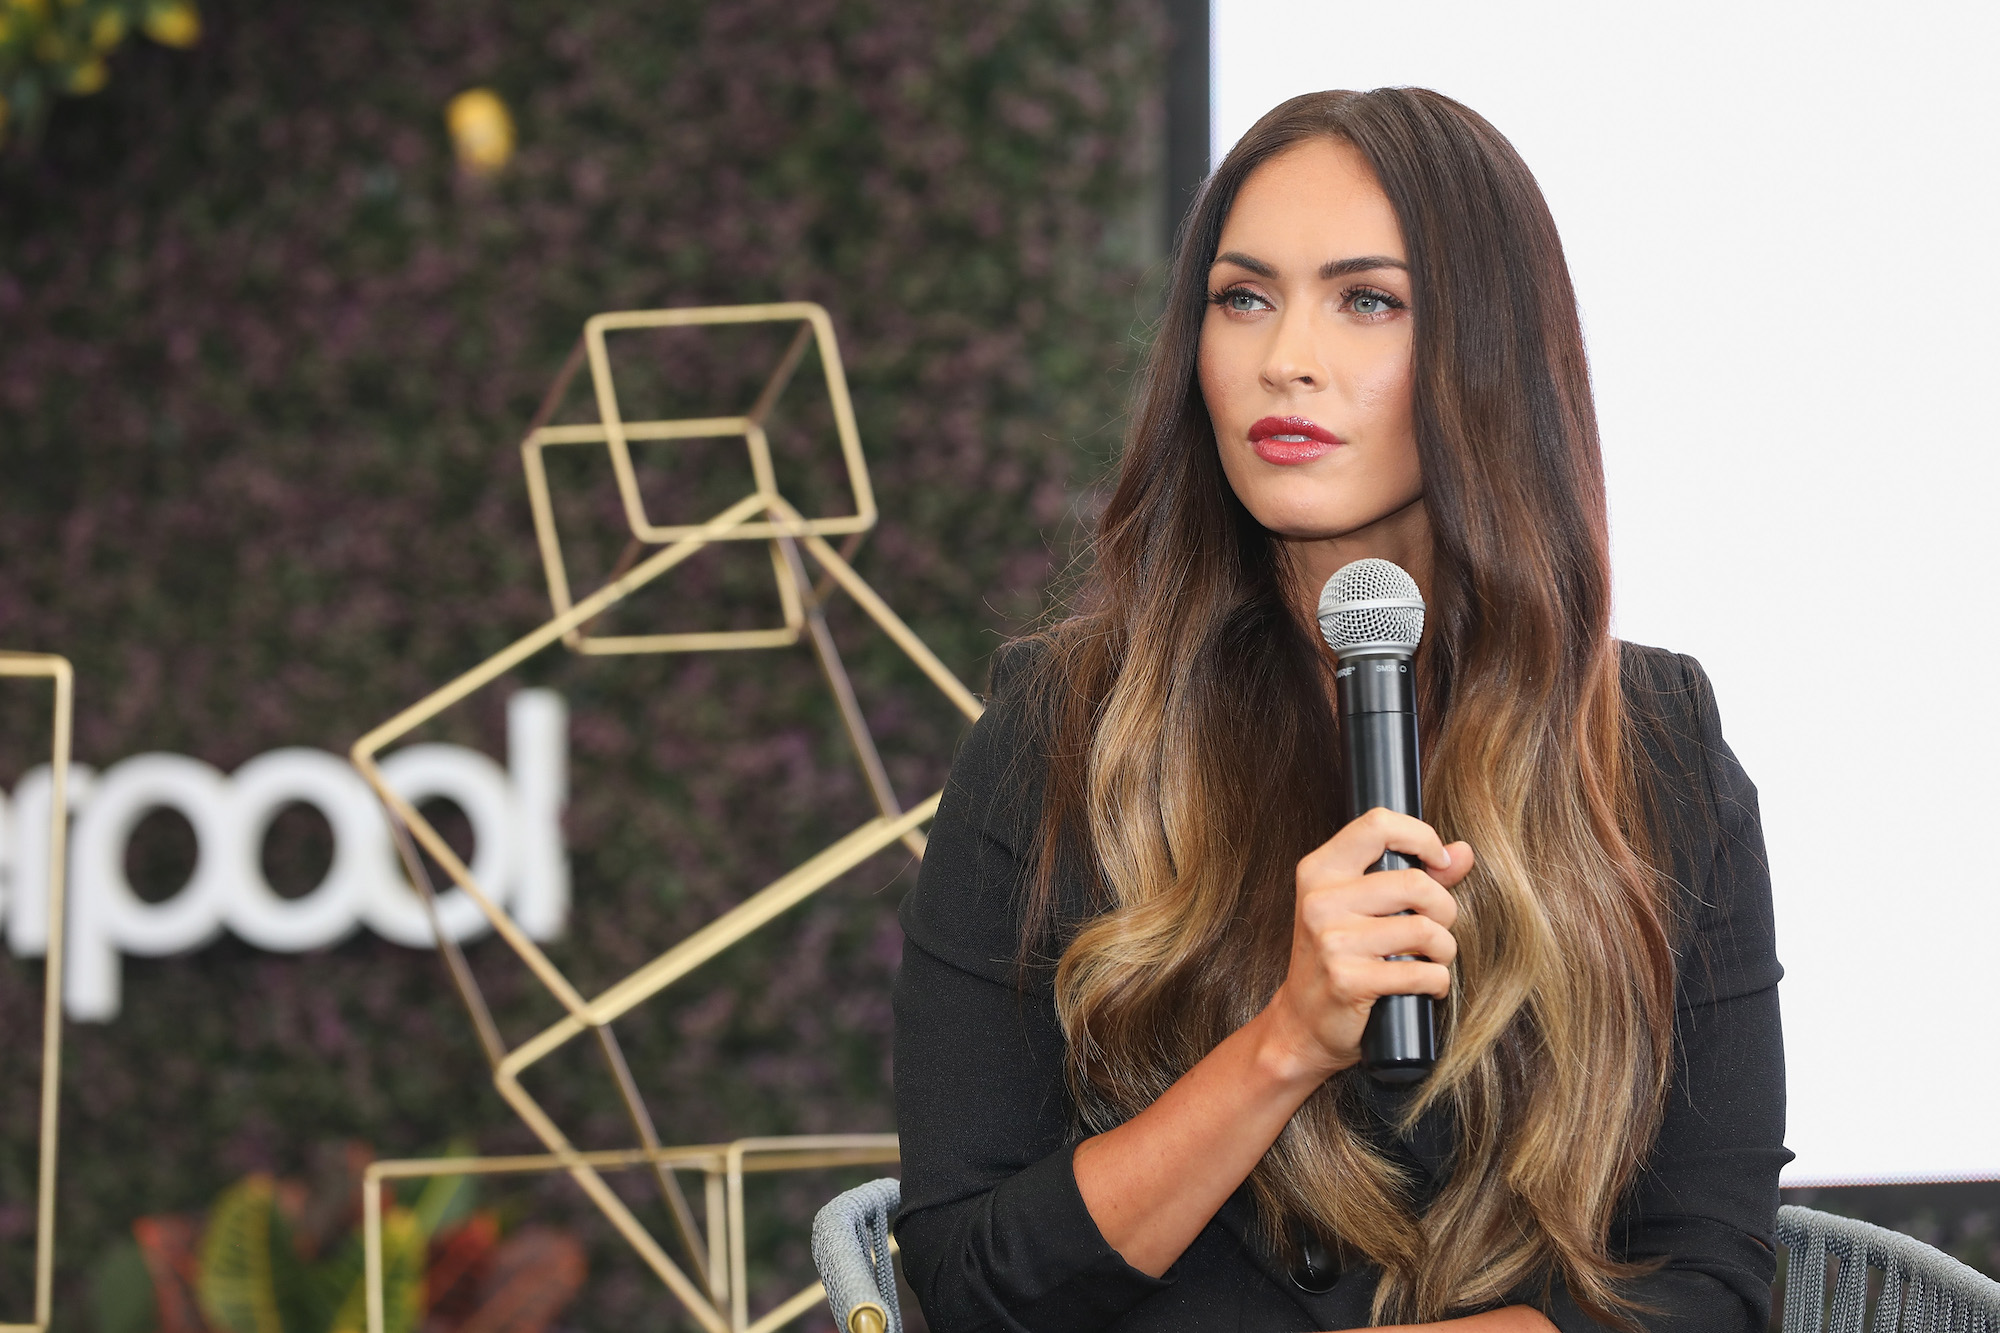 Megan Fox at a press conference during the Liverpool Fashion Fest Autumn/Winter 2017 at Liverpool Insurgentes on September 6, 2017.